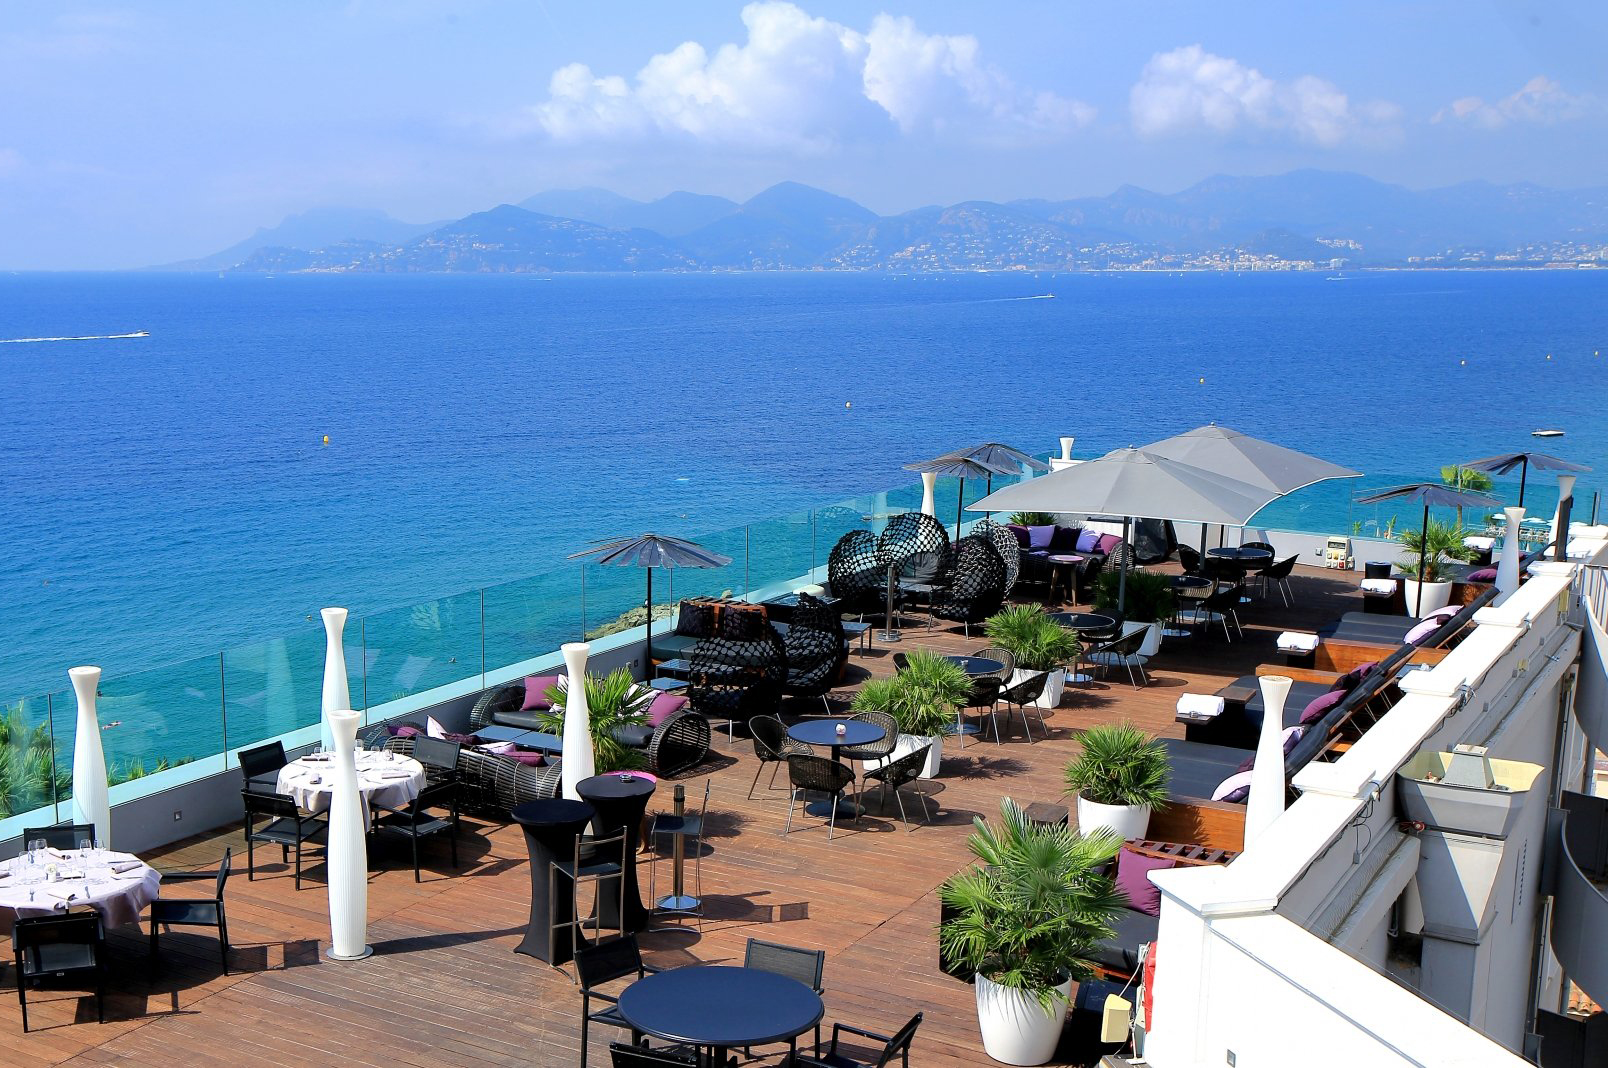 rooftop-top-restaurant-bar-tendance-sortie-cannes-radisson-hotel